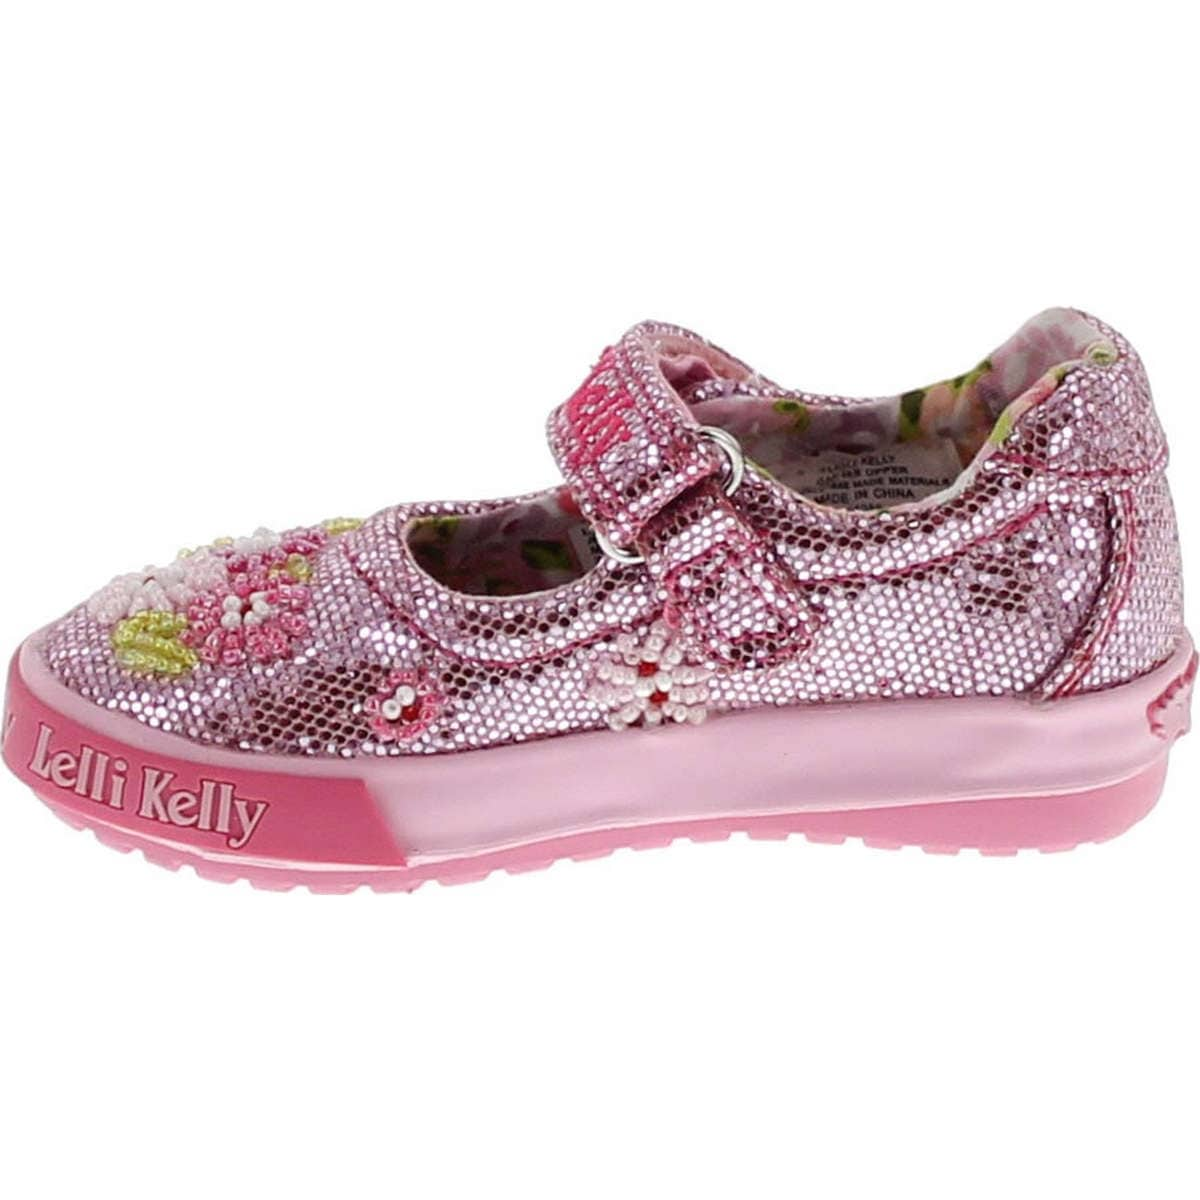 ad0bae33 Shop Lelli Kelly Kids Girls Lk4056 Fashion Mary Jane Flats Shoes - Pink  Glitter - Free Shipping Today - Overstock - 14809784